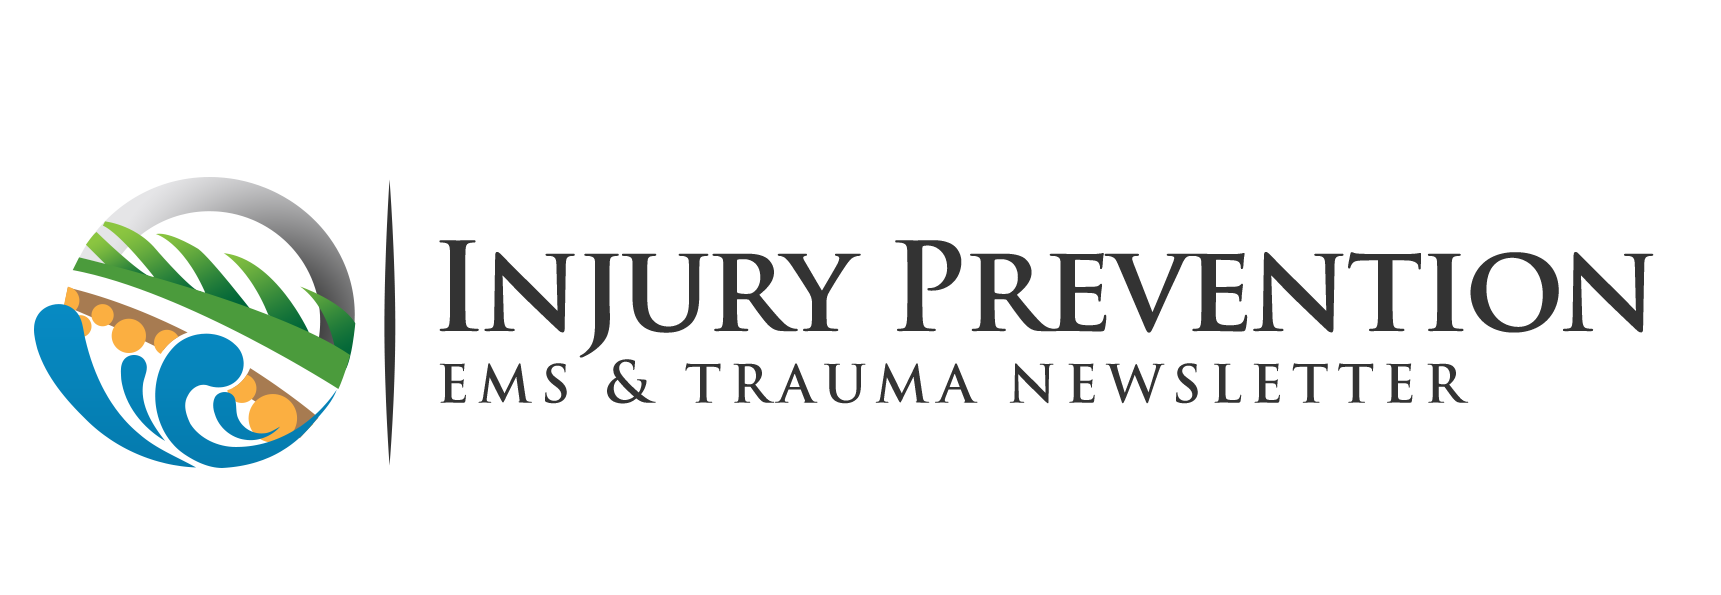 Injury Prevention, EMS & Trauma Newsletter